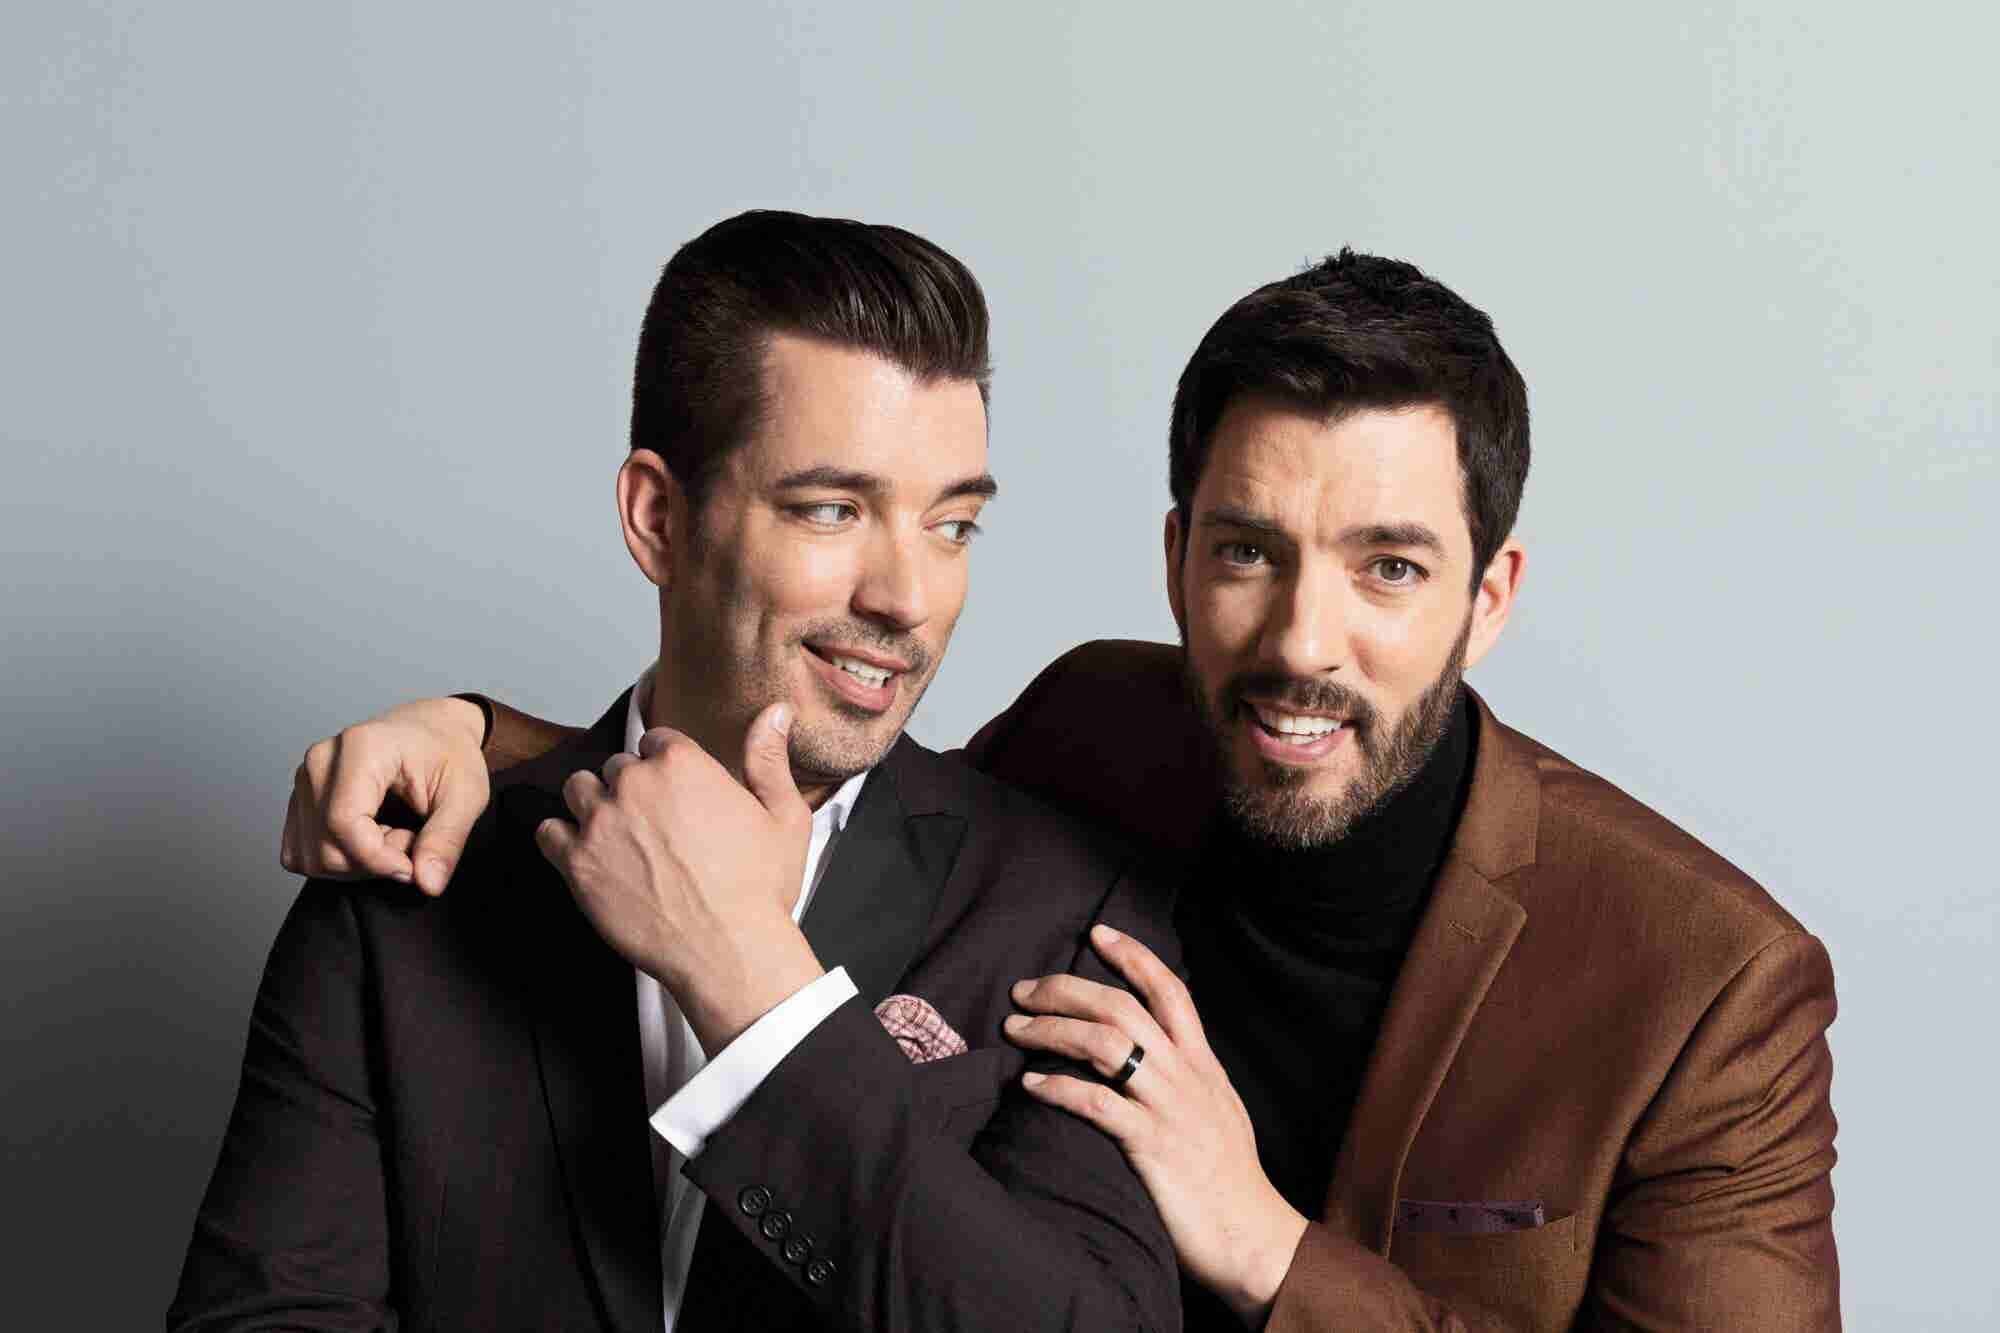 The Property Brothers' Business Empire Depends on One Thing: Their Very Strong Partnership